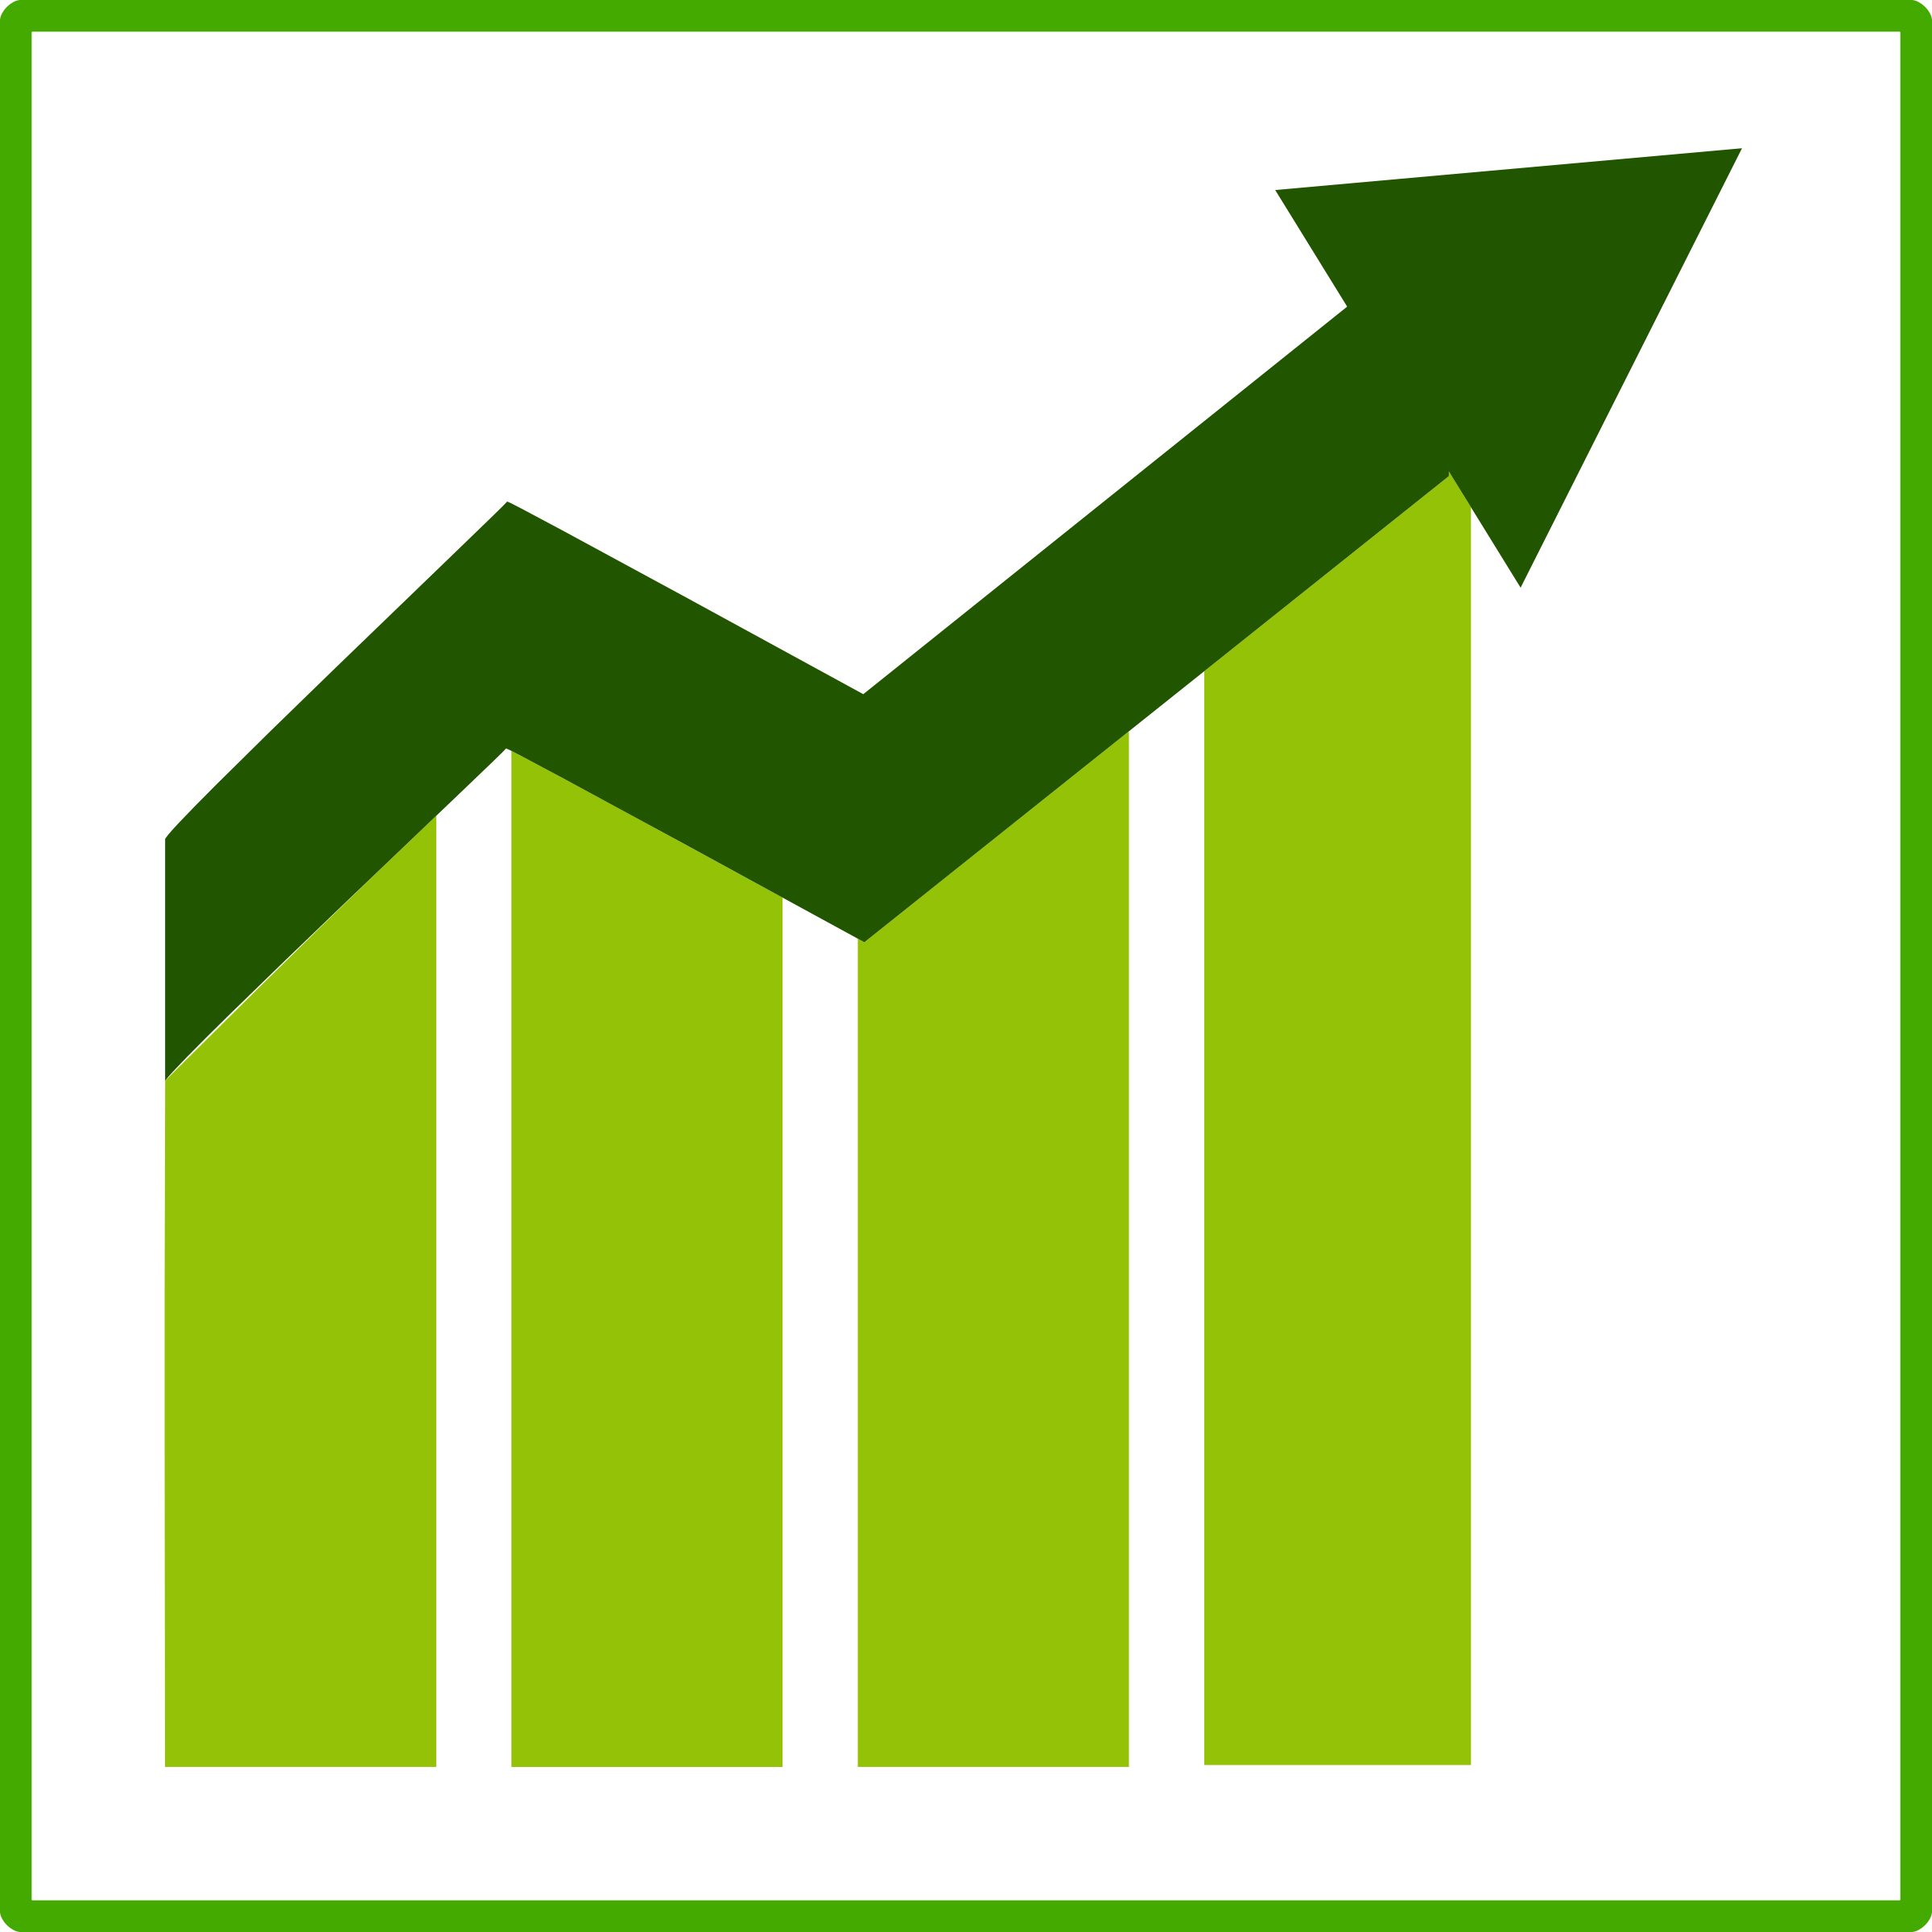 Growth clipart animated. Free economic development cliparts